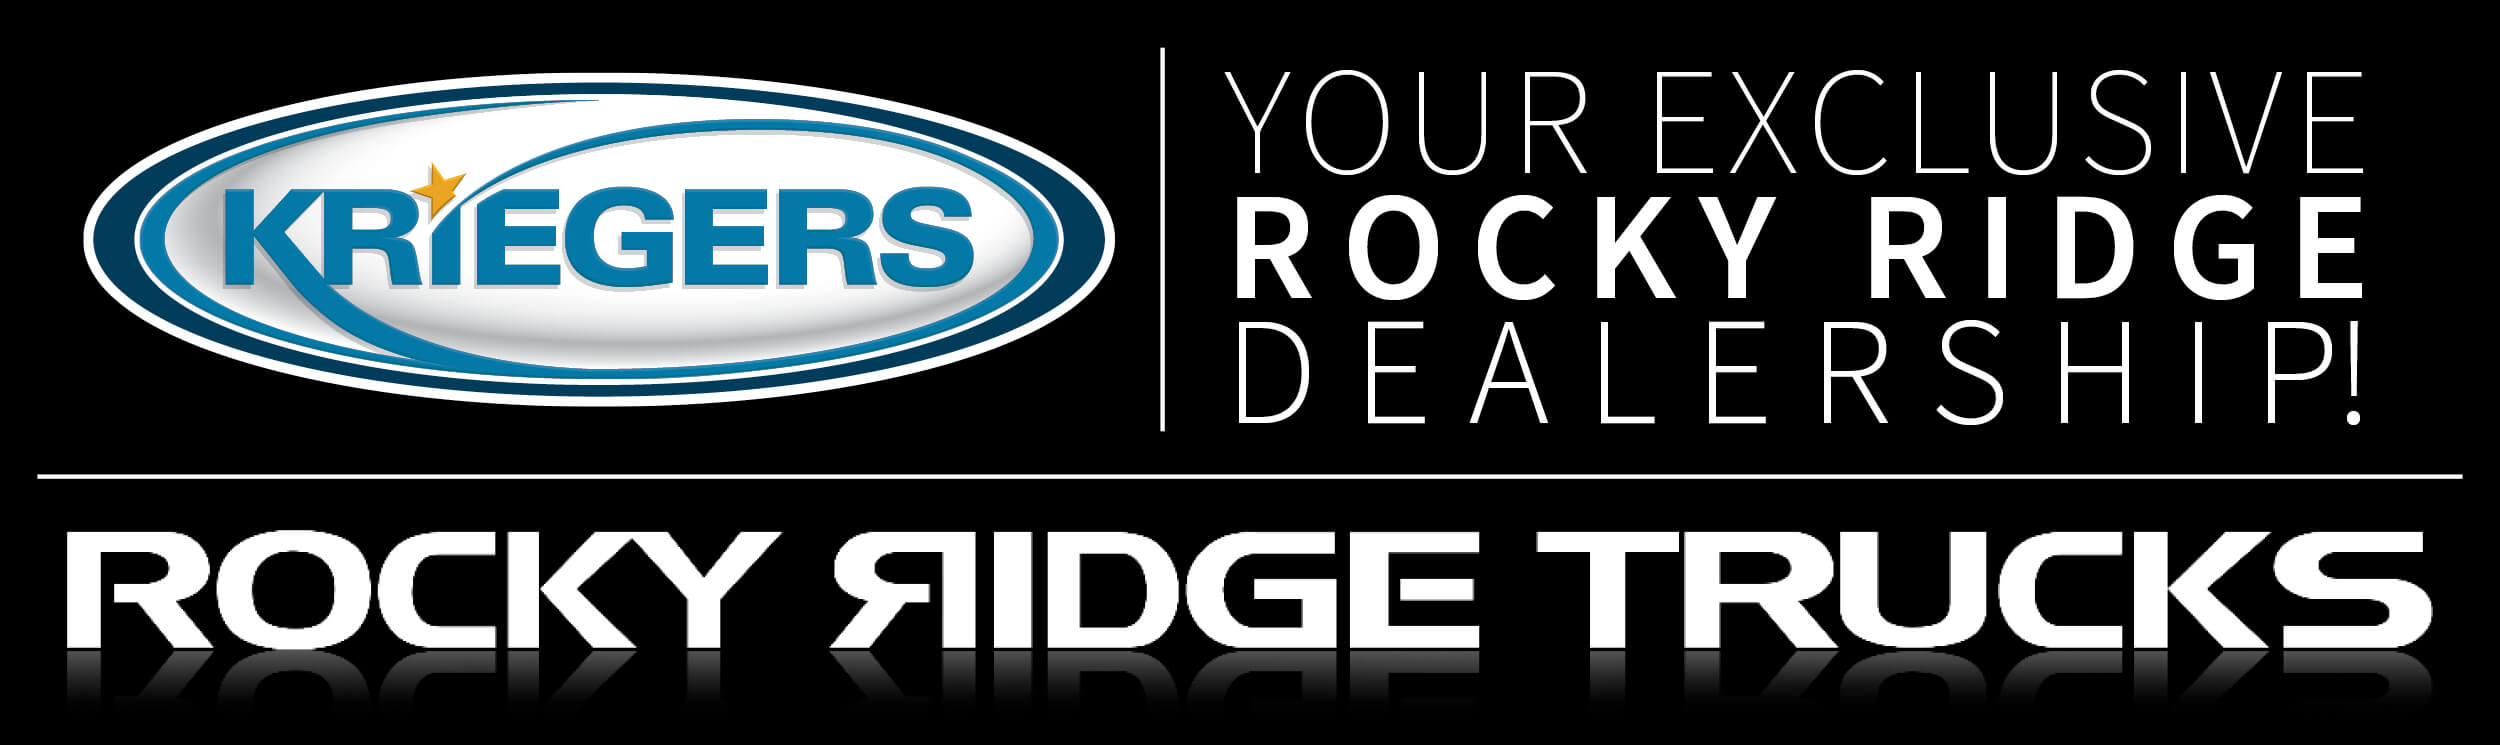 Kriegers are your exclusive Rocky Ridge Dealership